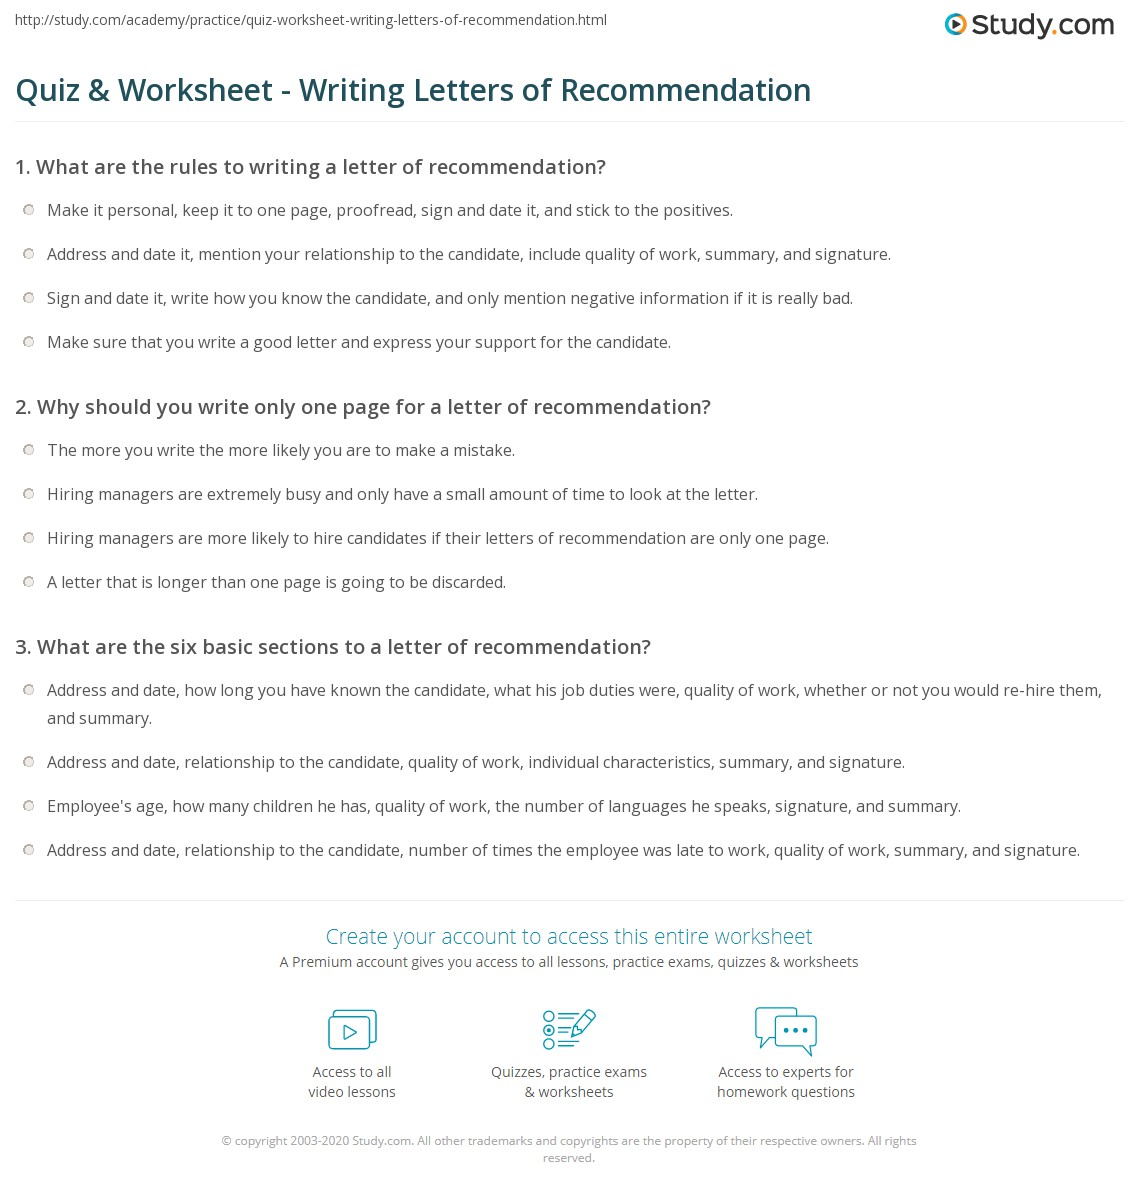 Quiz & Worksheet Writing Letters of Re mendation